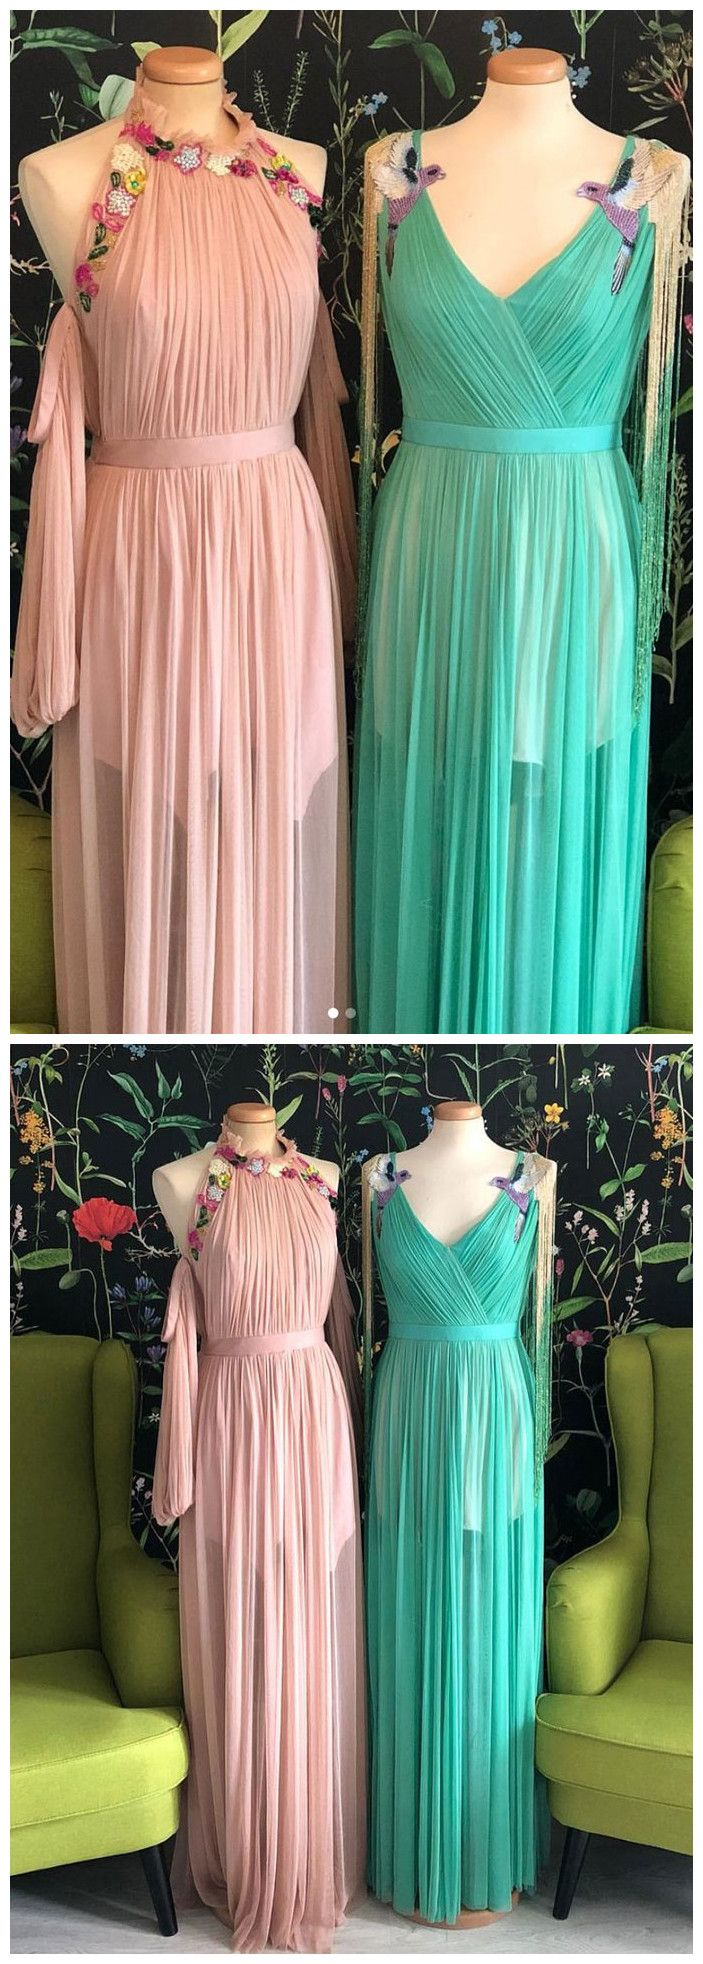 chic aline pink prom dresses with ruffles applique vintage prom